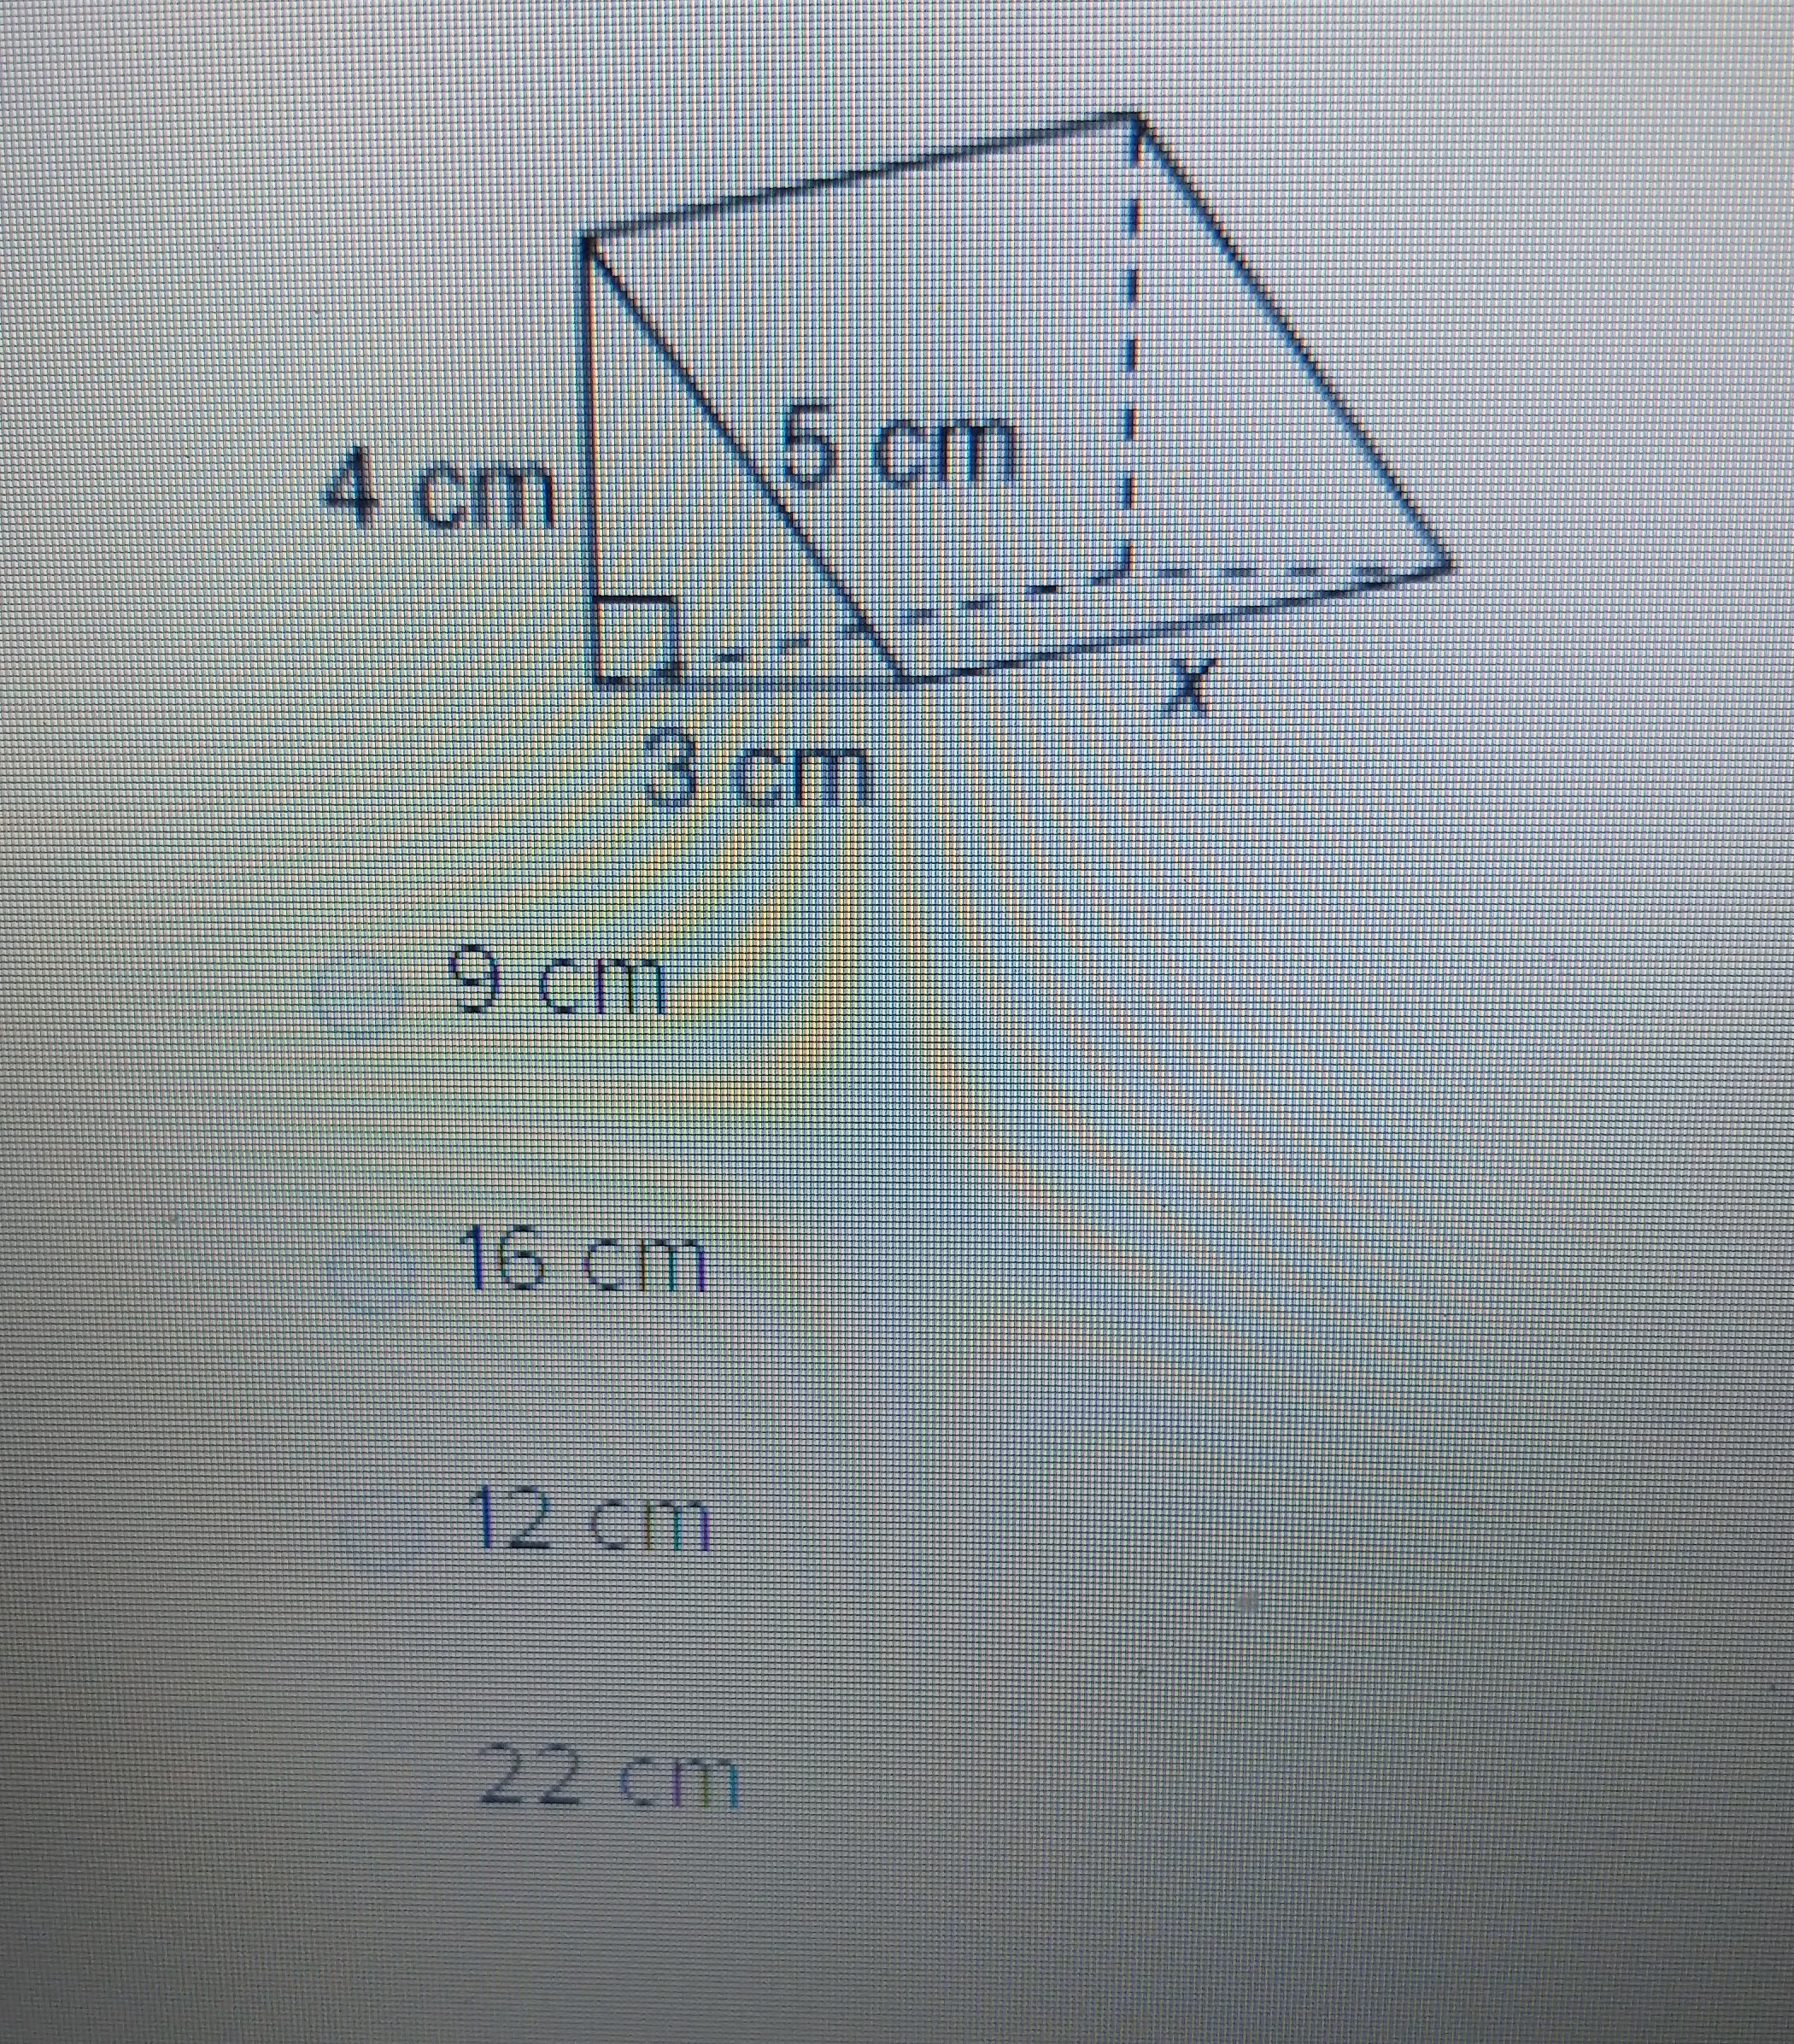 The Surface Area Of A Triangular Prism Pictured Below Is